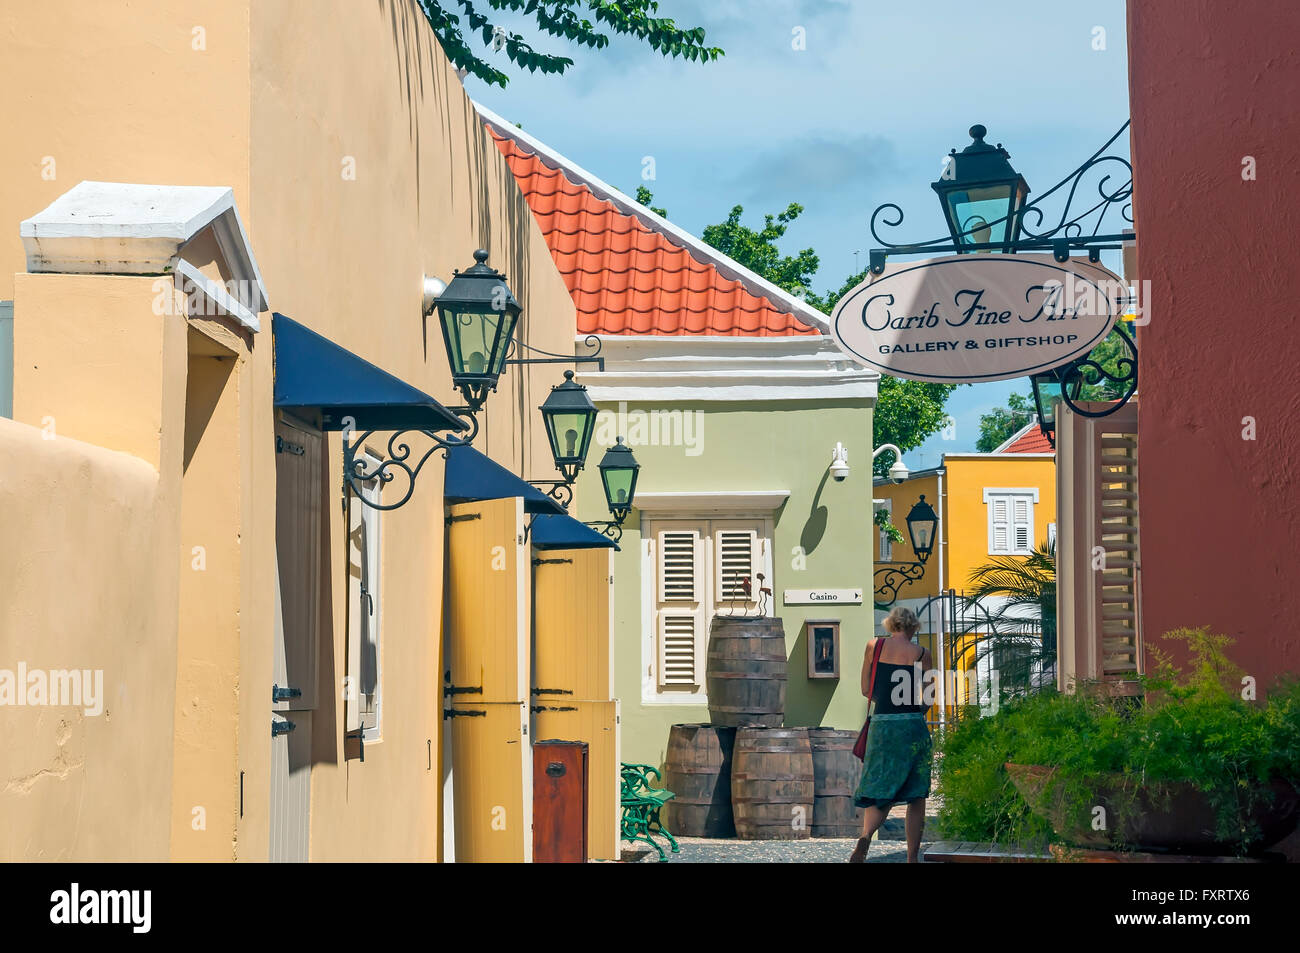 Historical preservation area with art gallery at Kura Hulanda, Ortrobanda Willemstad Curacao - Stock Image